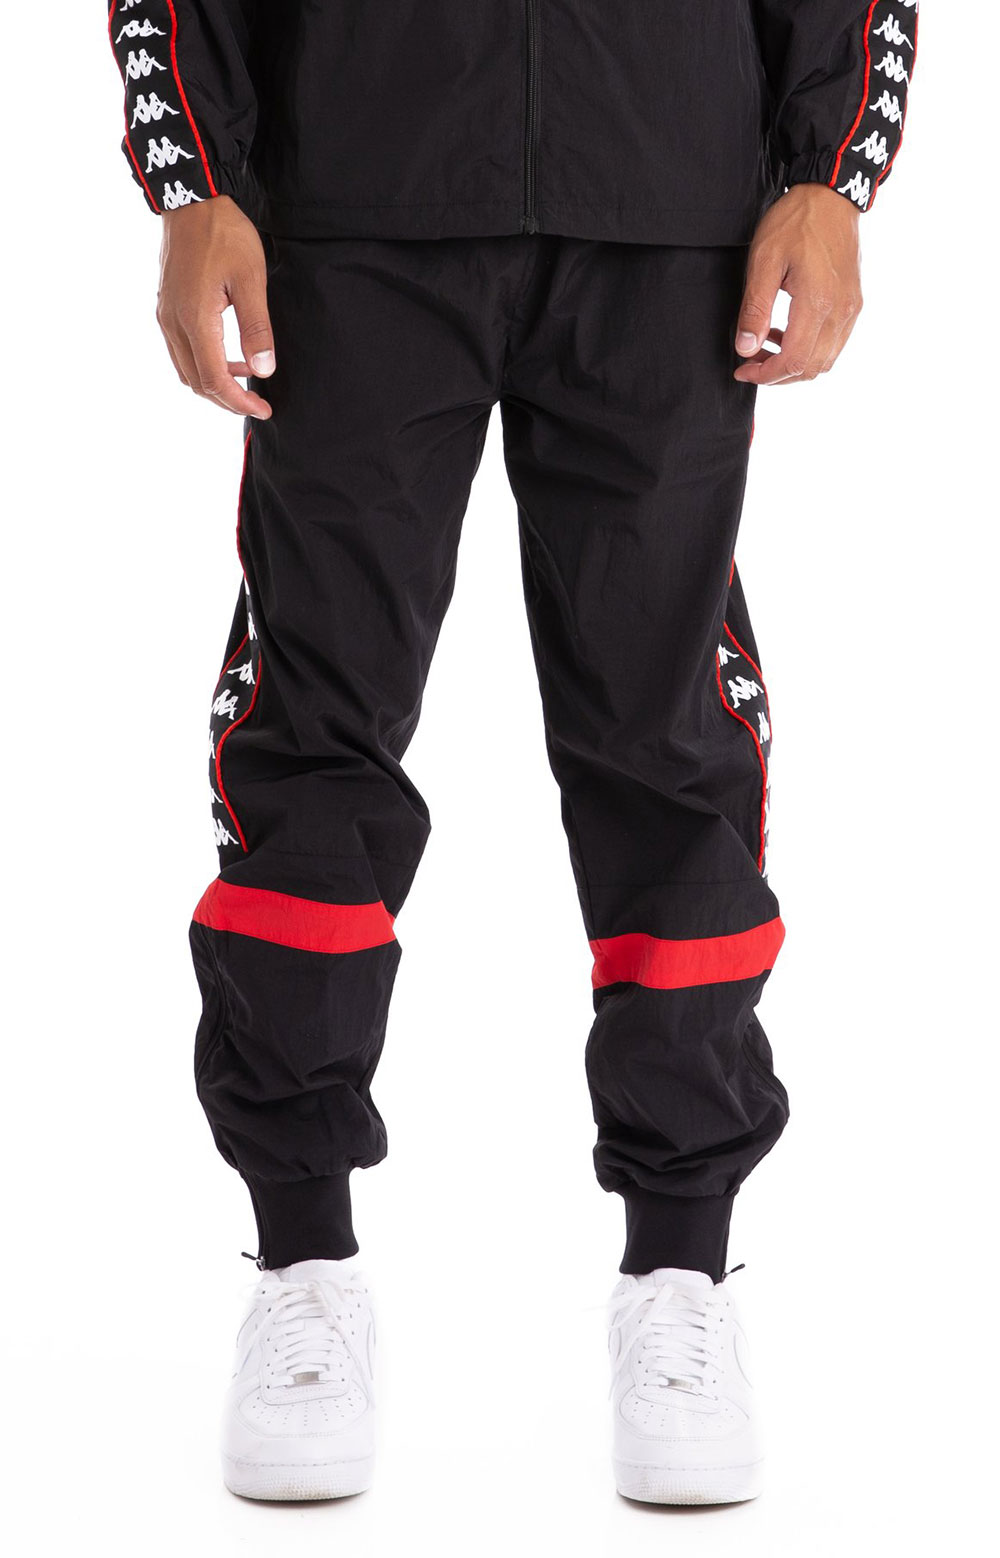 222 Banda Braka Woven Pants - Black/Red